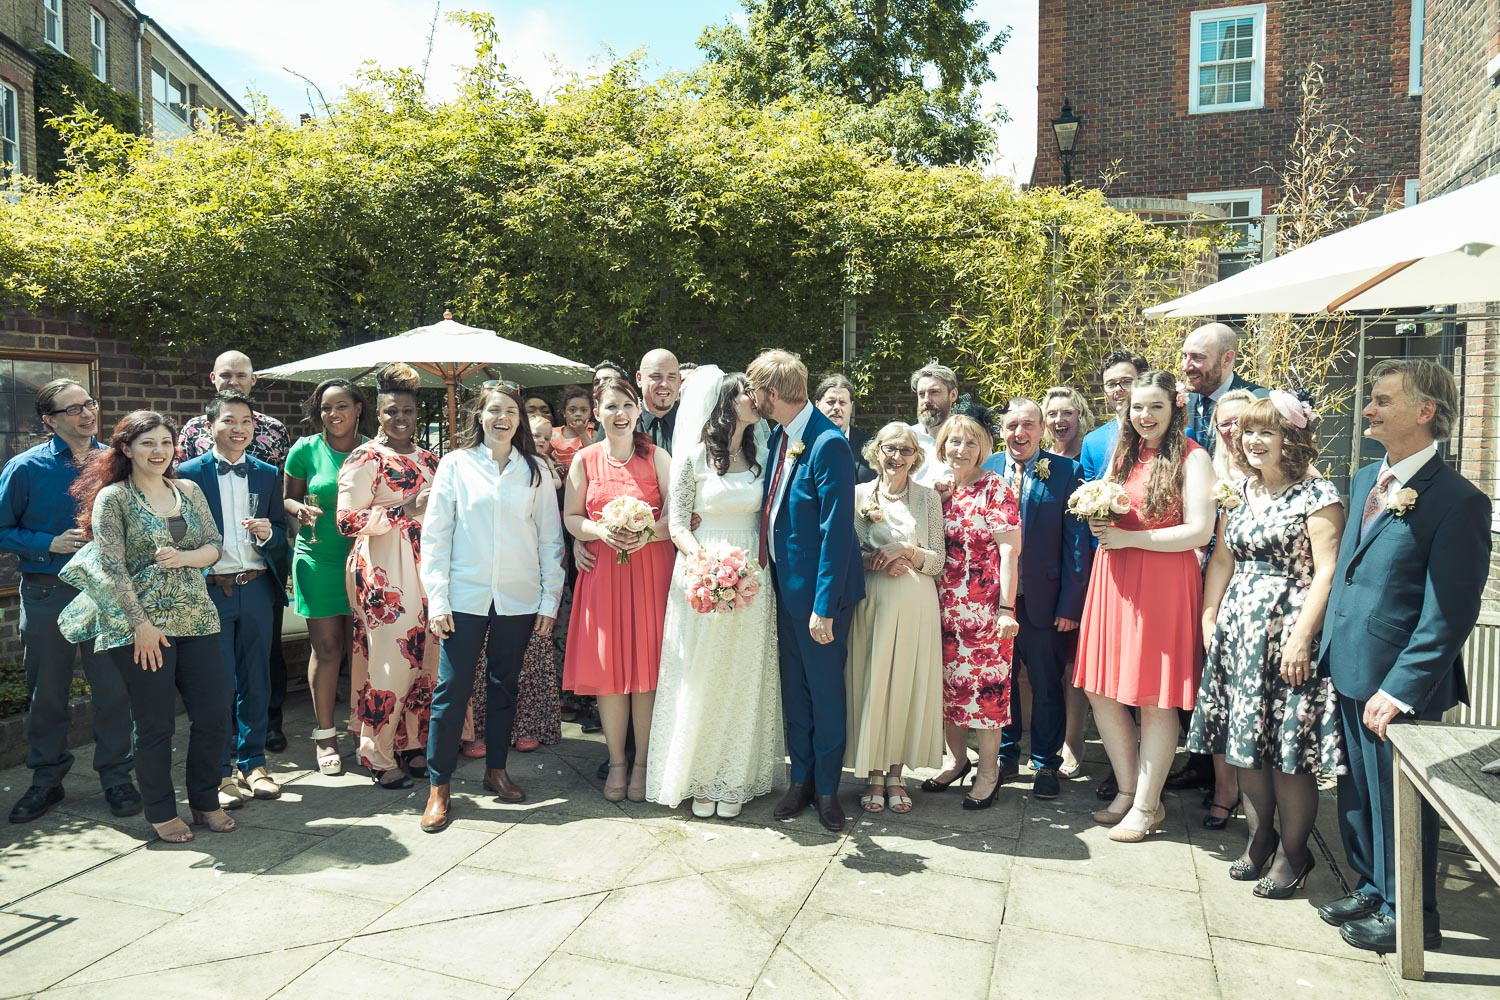 burgh-house-hampstead-north-london-wedding-0111.jpg